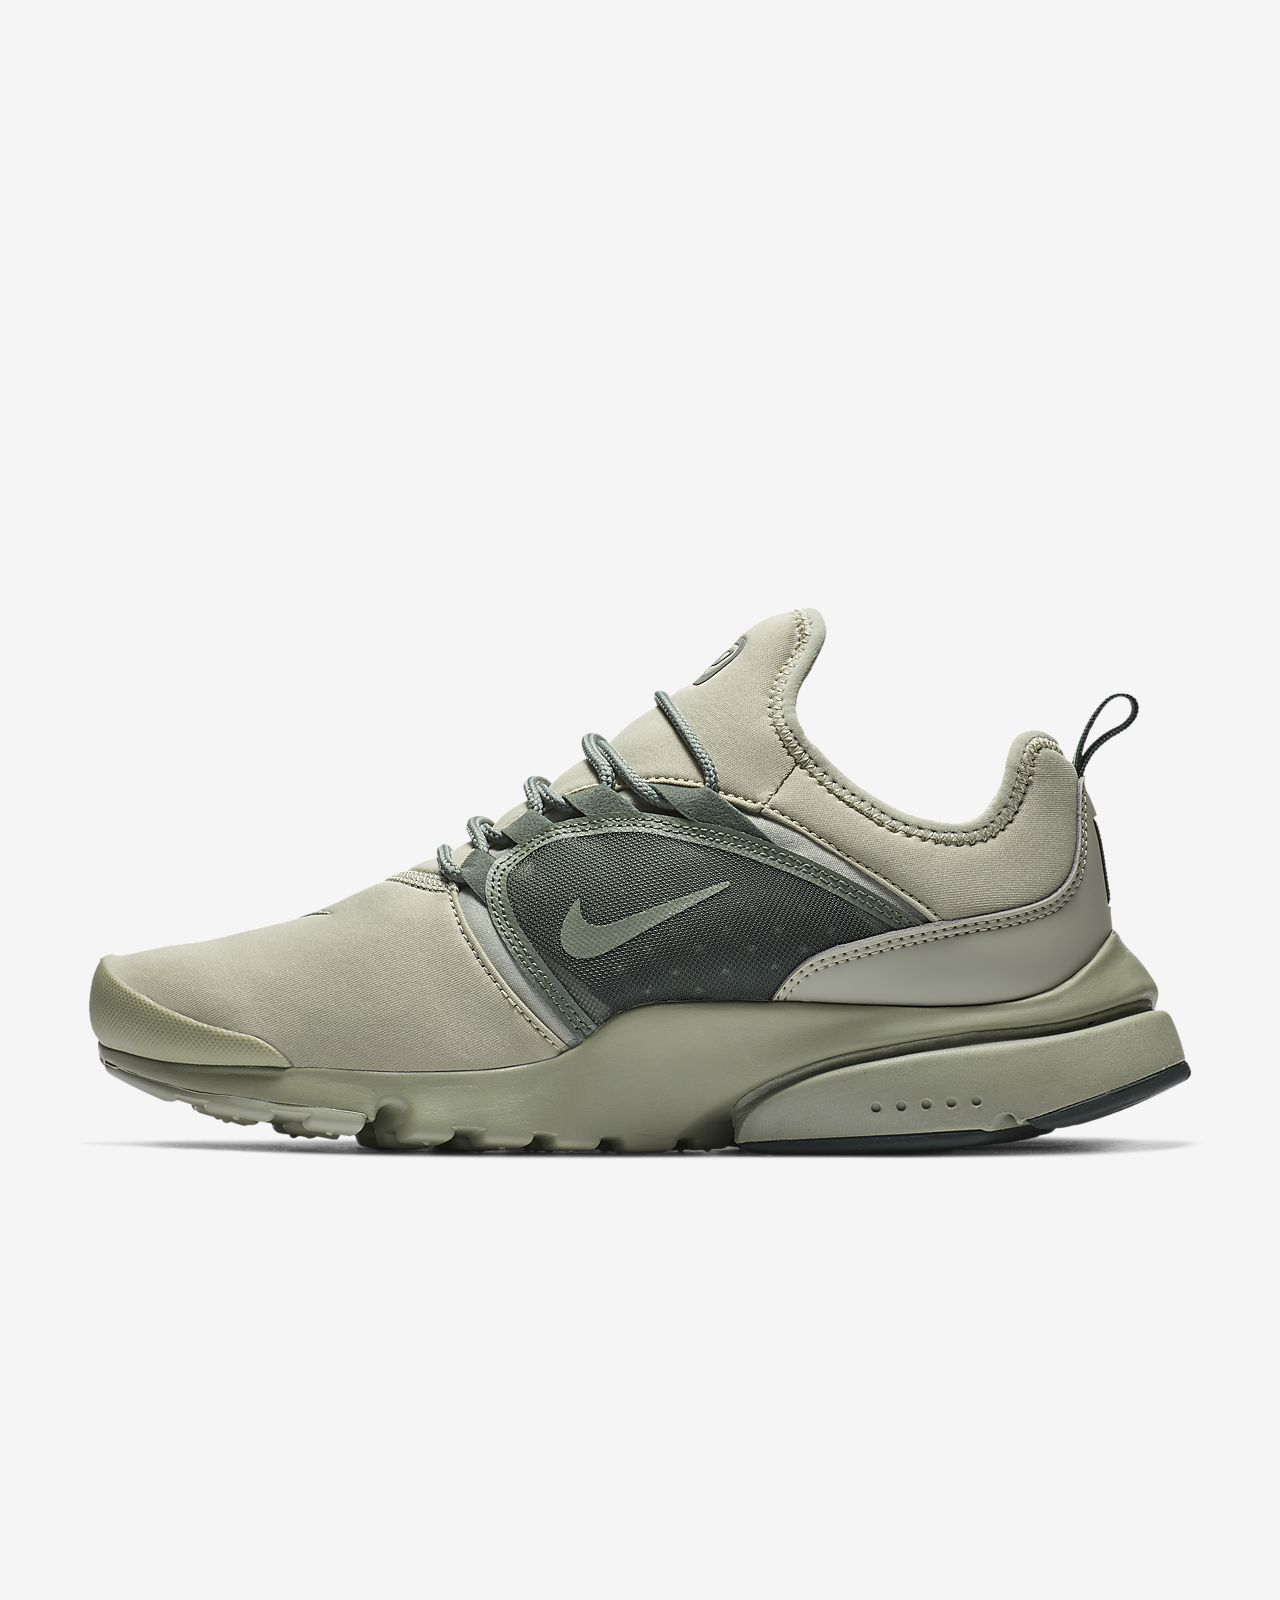 66cfbcd77ab9 Chaussure Nike Presto Fly World pour Homme. Nike.com FR